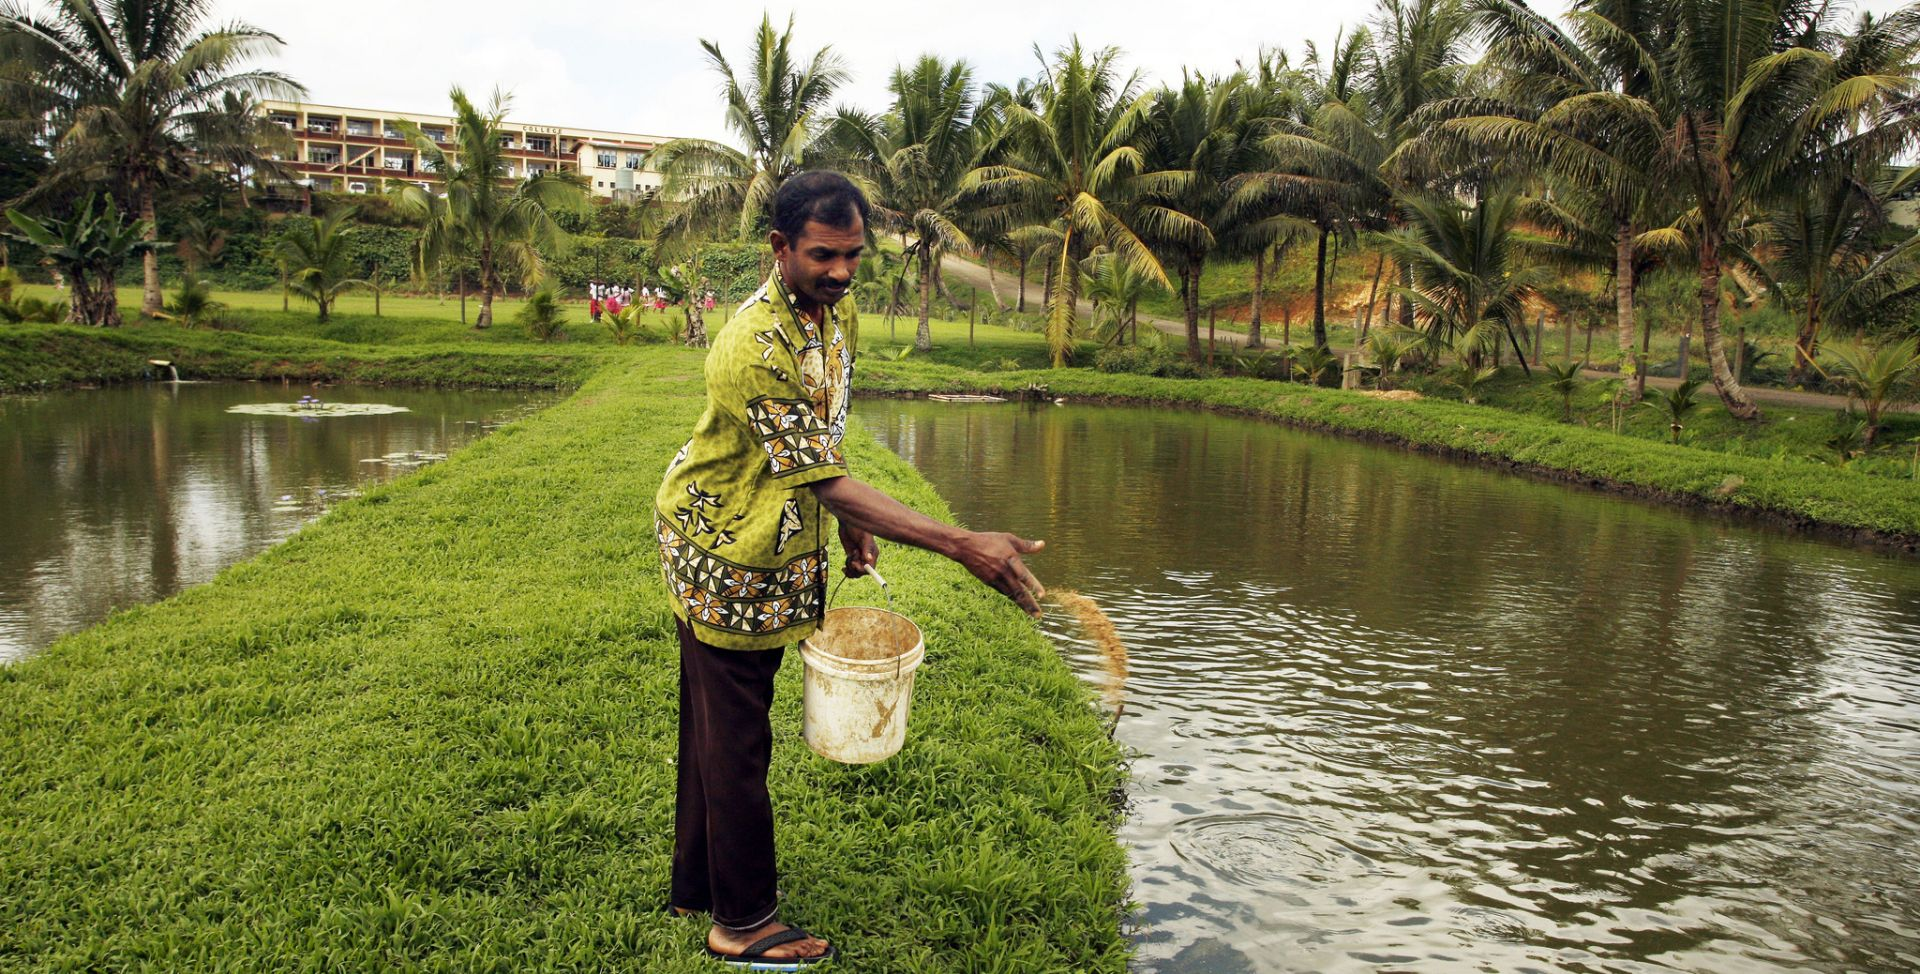 A man standing in a canal area throwing fish food into the water, behind him are palm trees